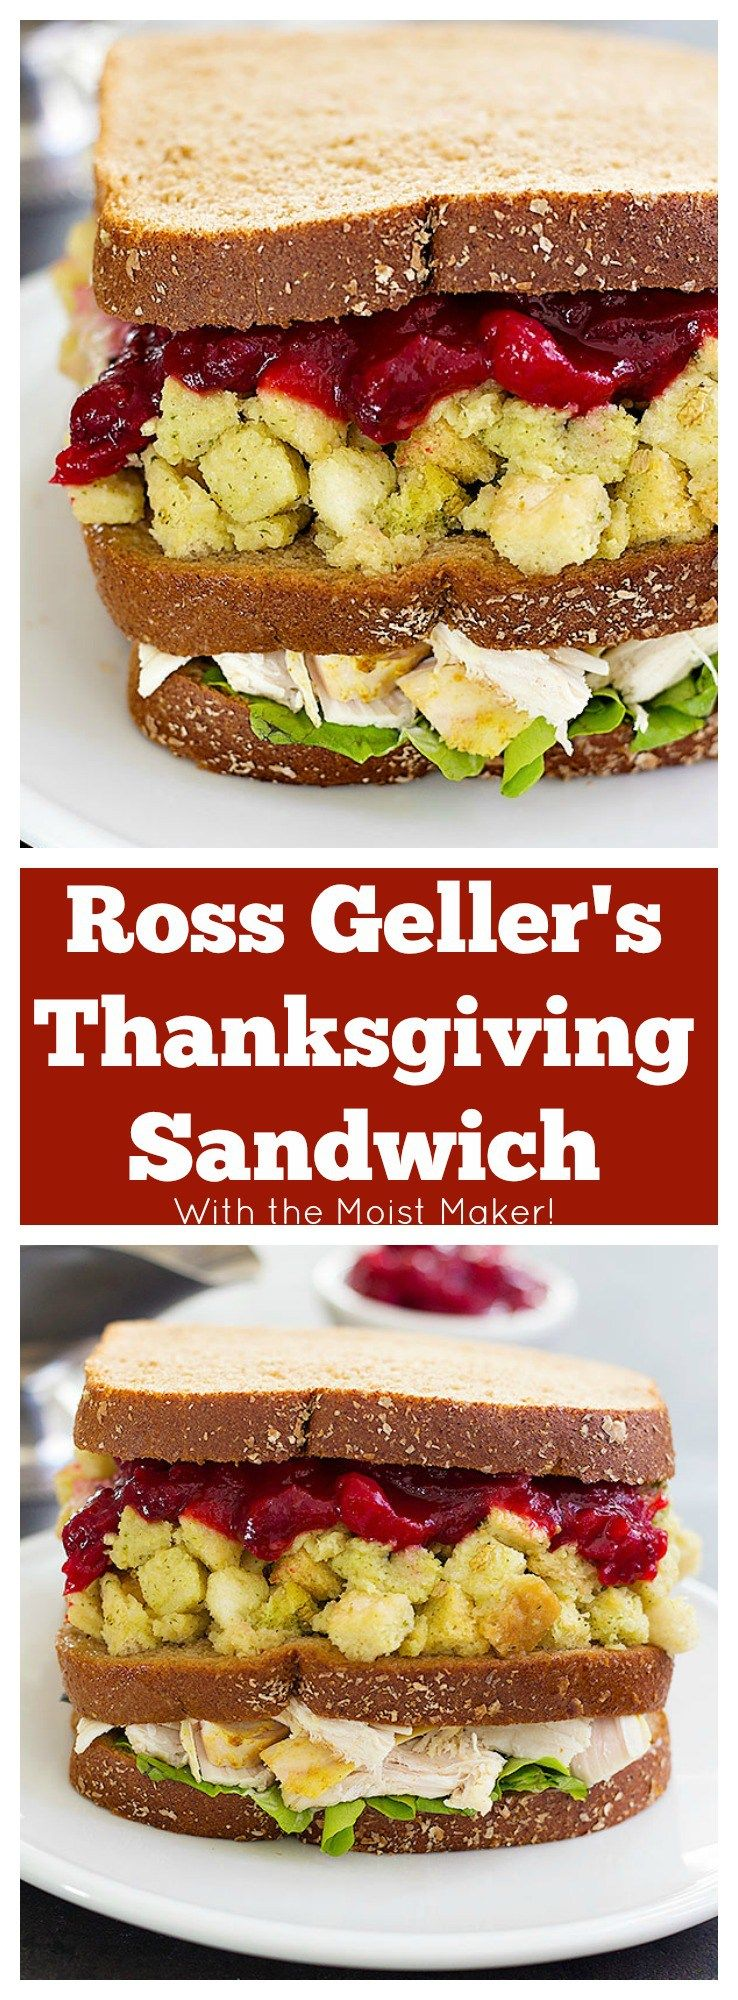 Inspired By A Classic Episode Of Friends Ross Geller S Thanksgiving Sandwich With The Moist Mak Thanksgiving Sandwich Sandwiches Thanksgiving Sandwich Recipes